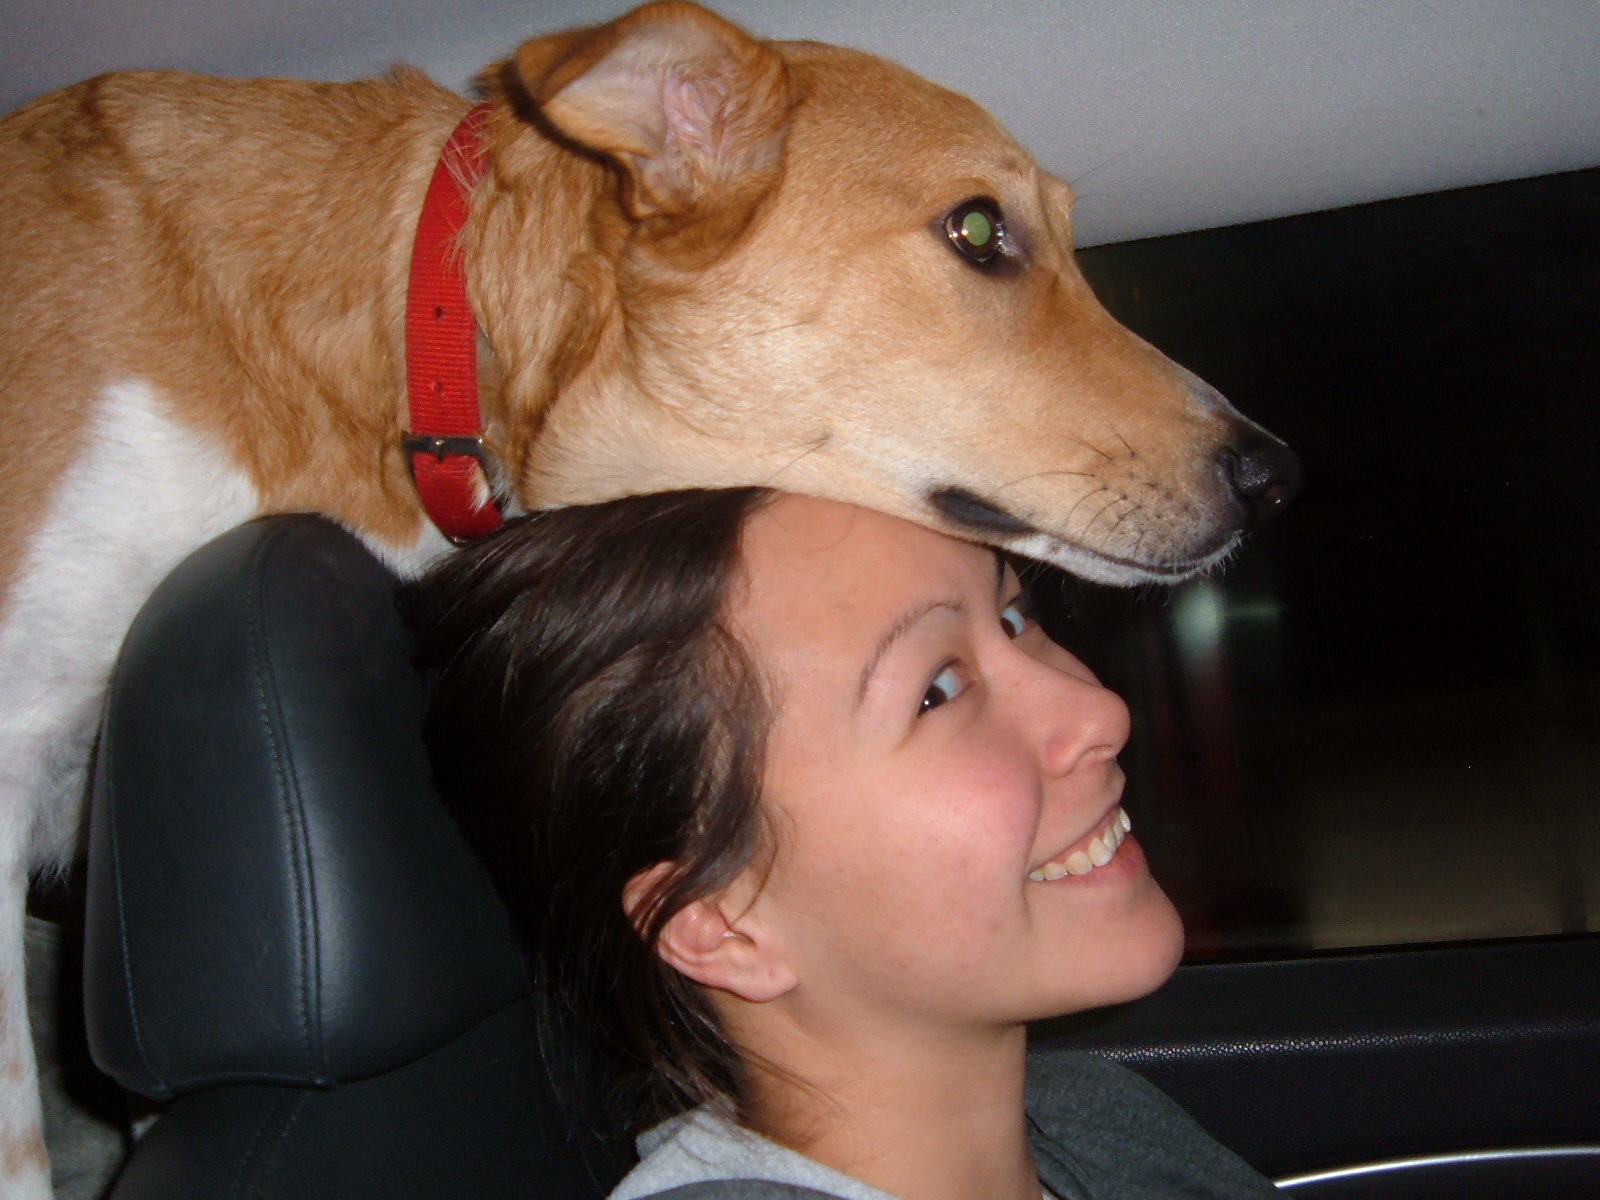 Distracted dogging: Legal in most states, controversial in all